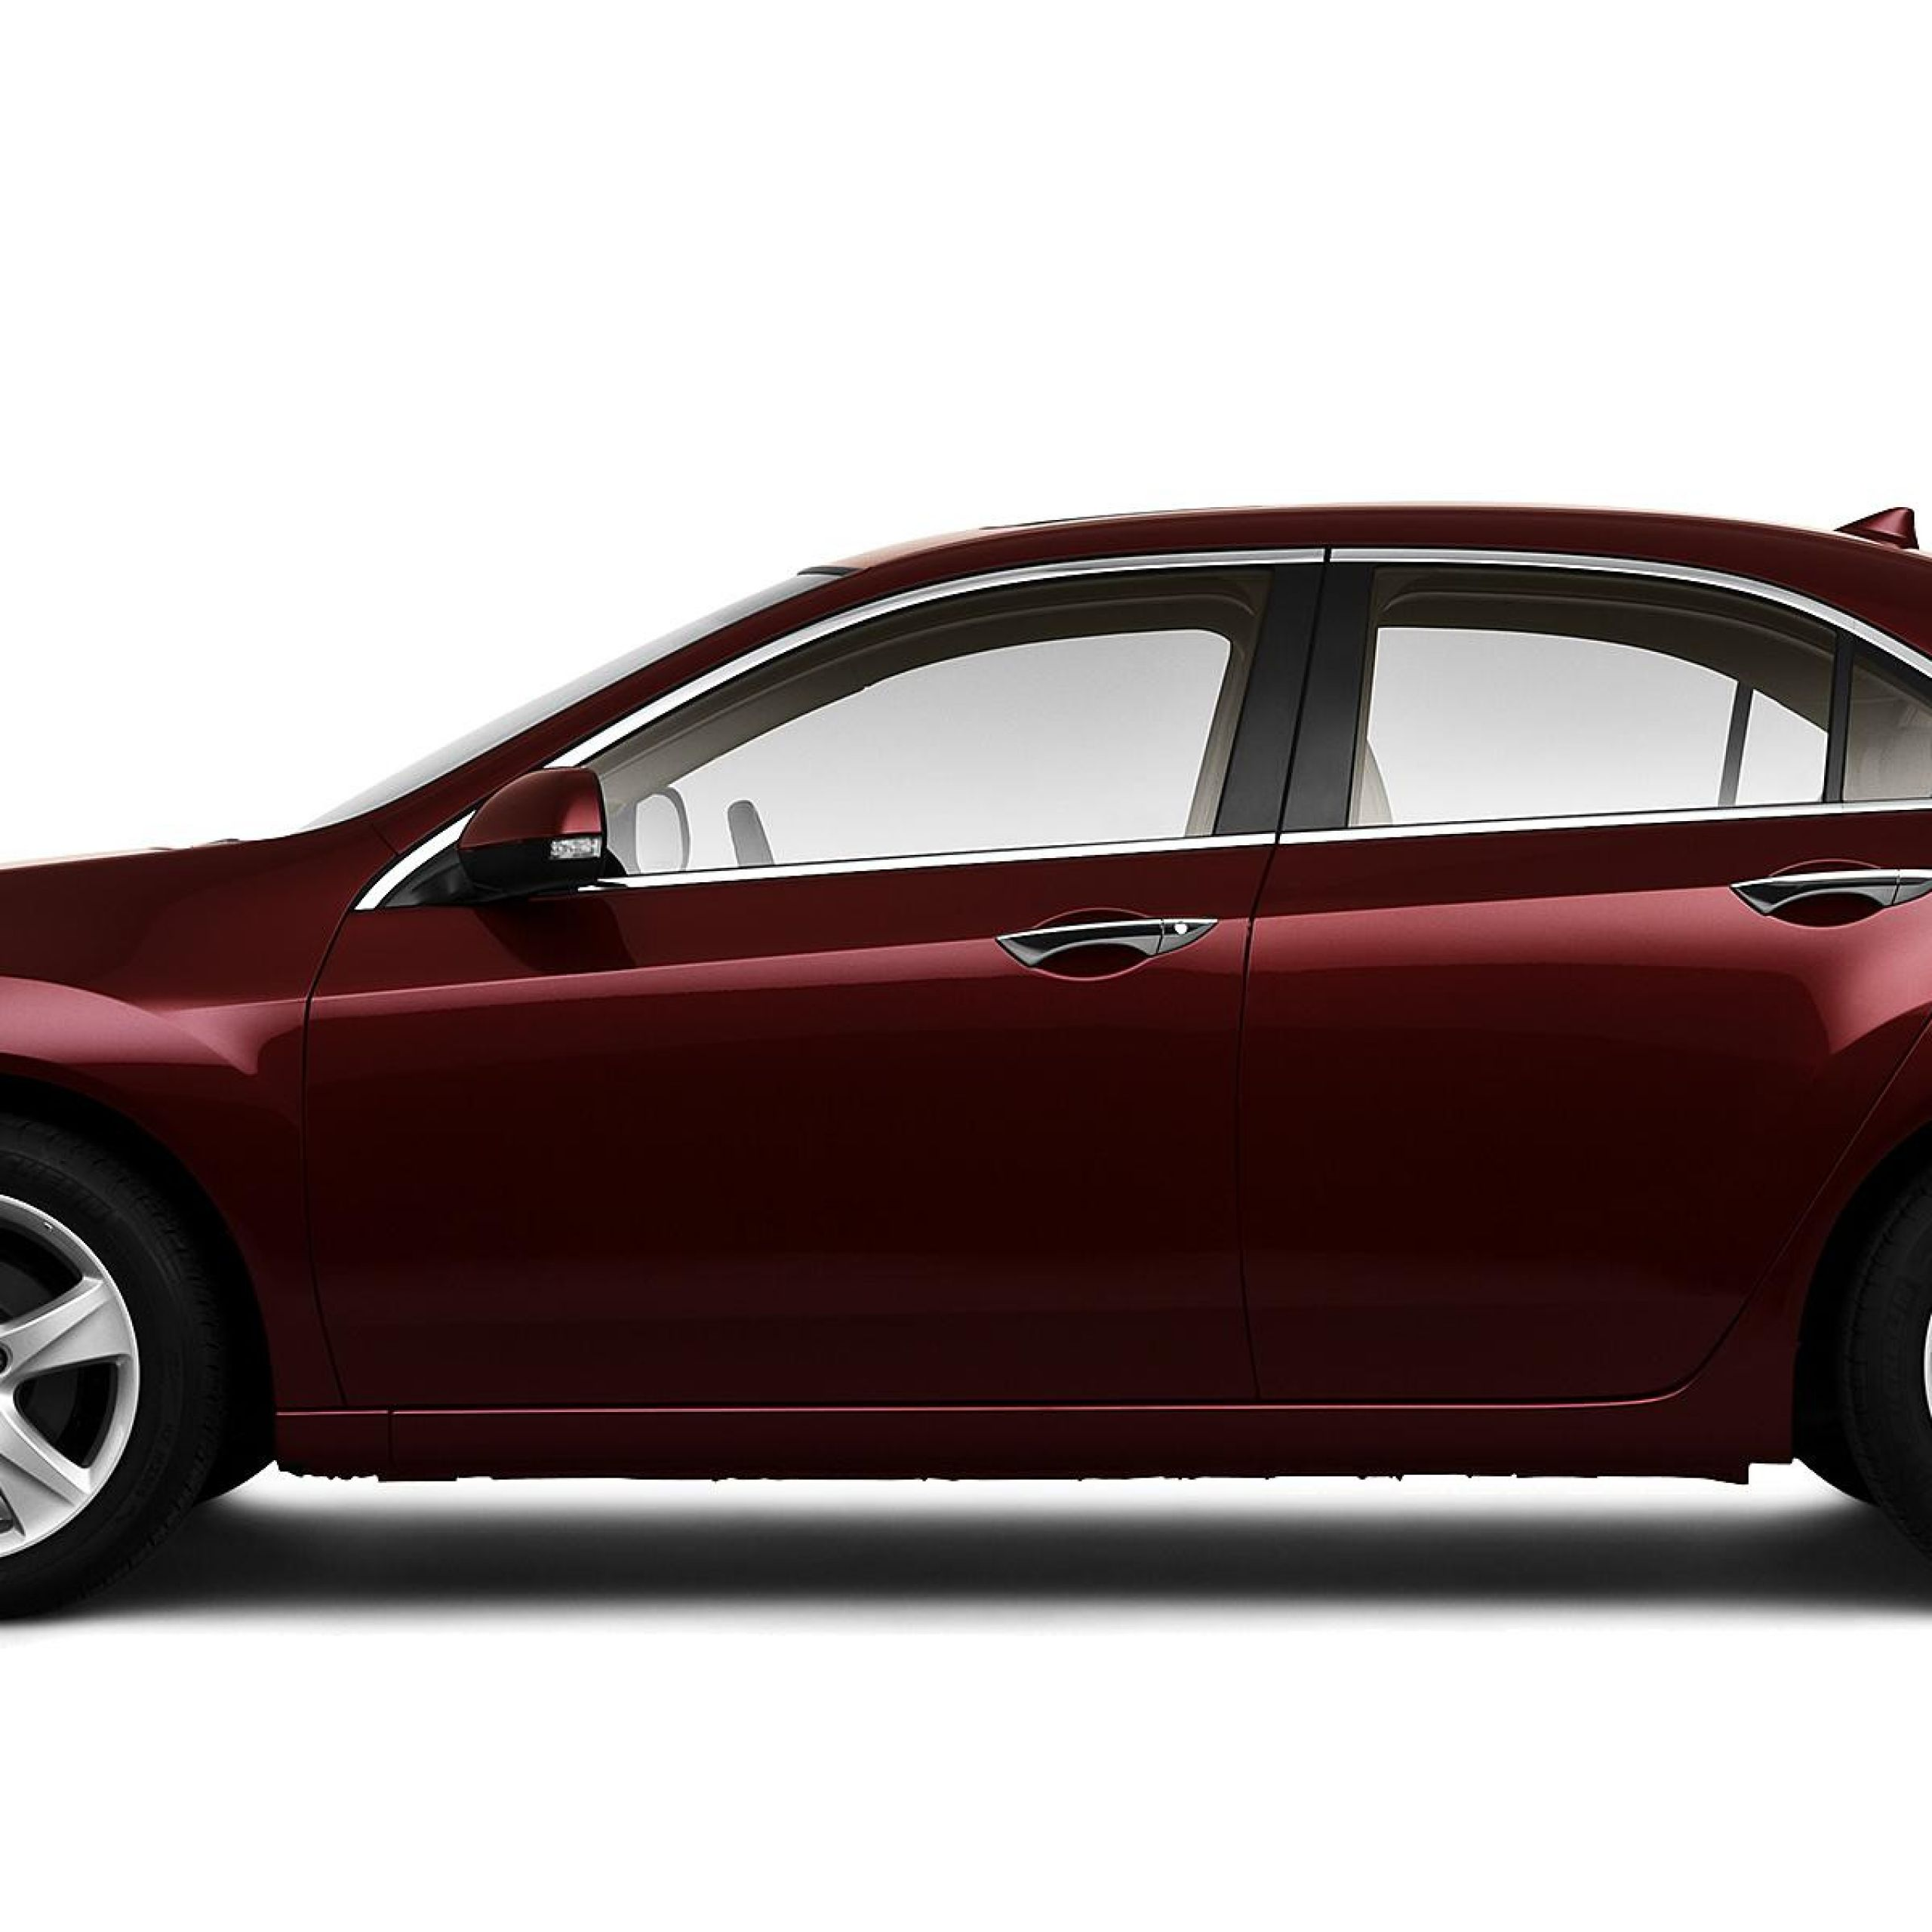 2010 acura tsx 4dr sedan 6m basque red pearl posite large